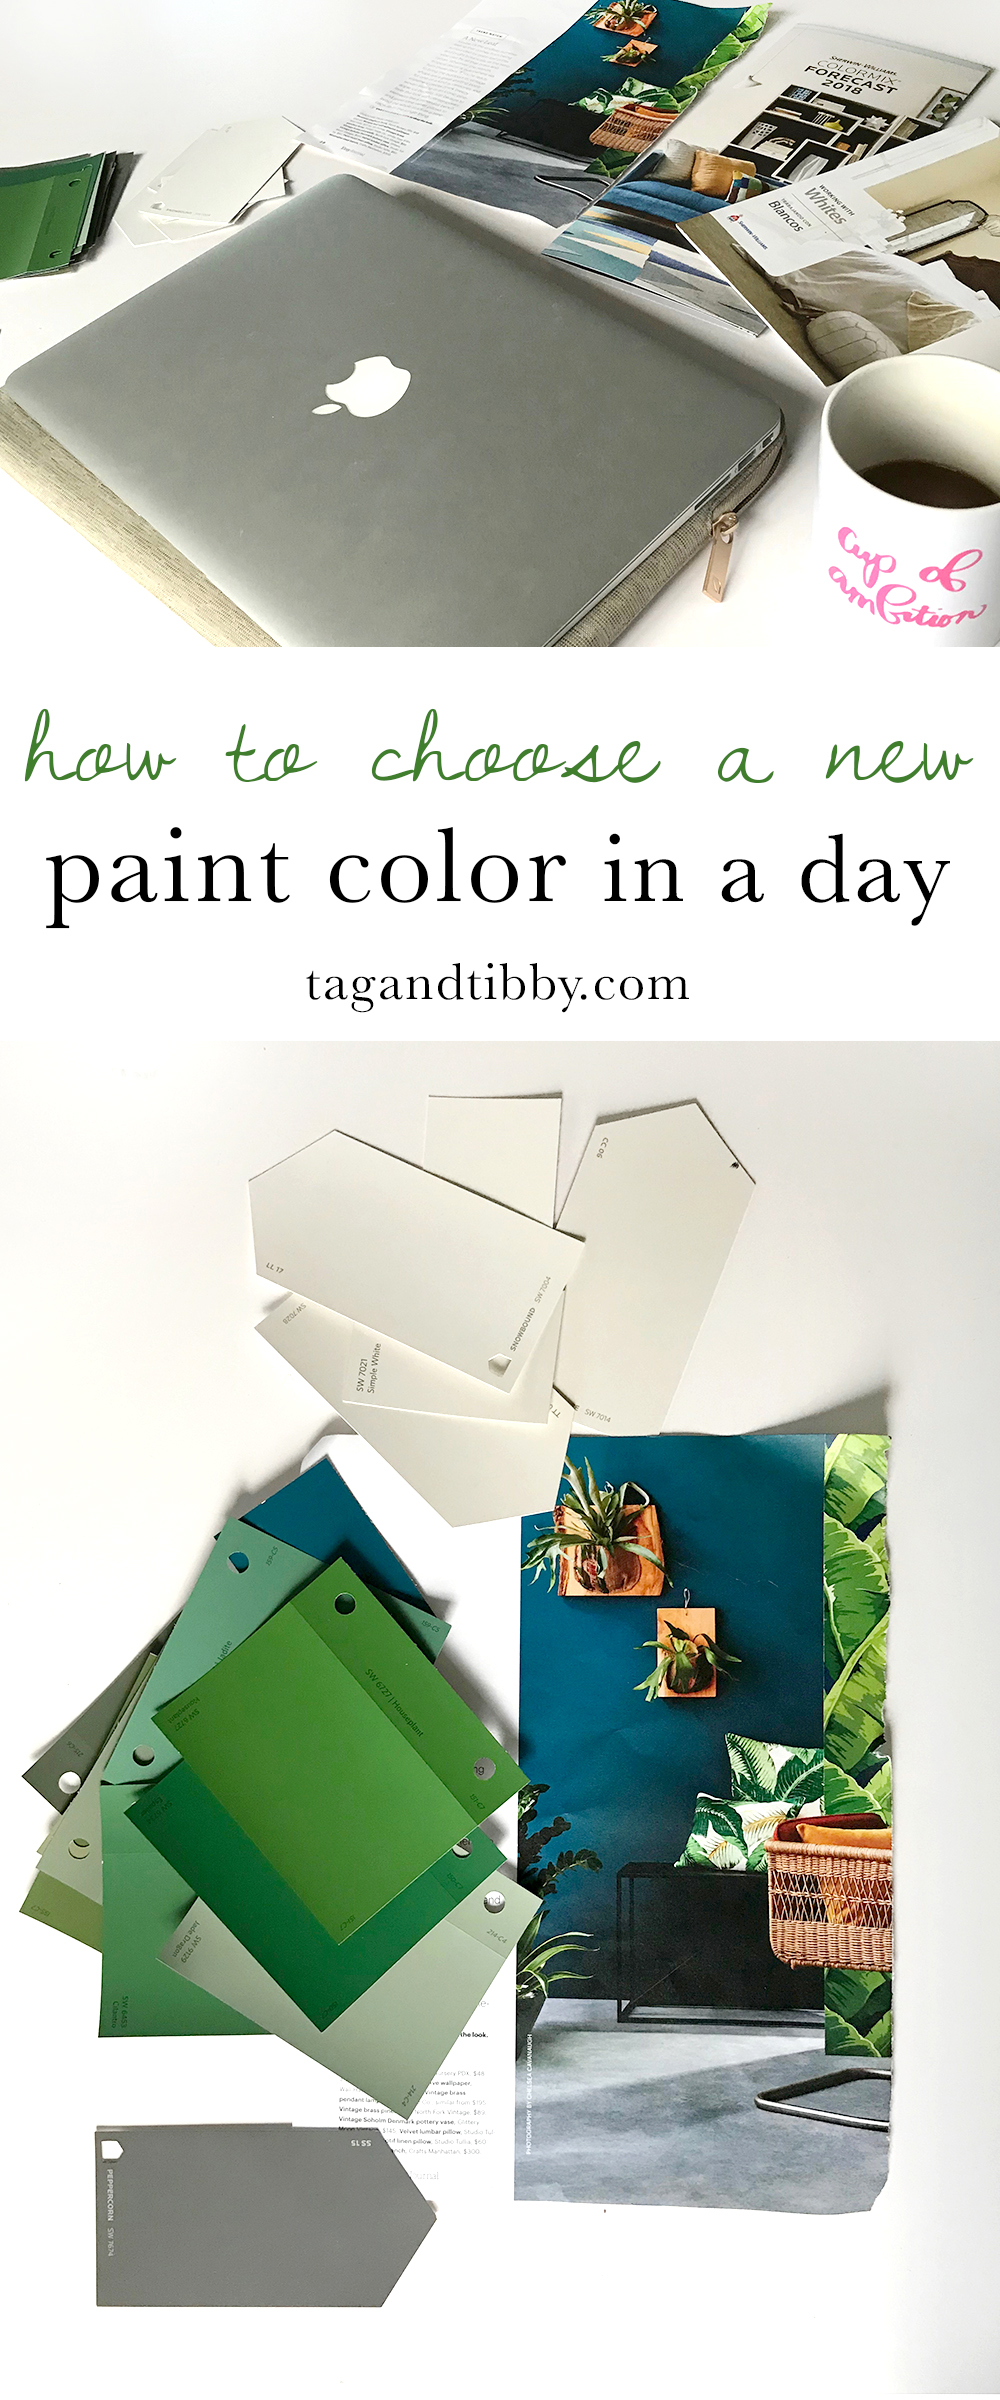 great article with practical tips for selecting a paint color quickly